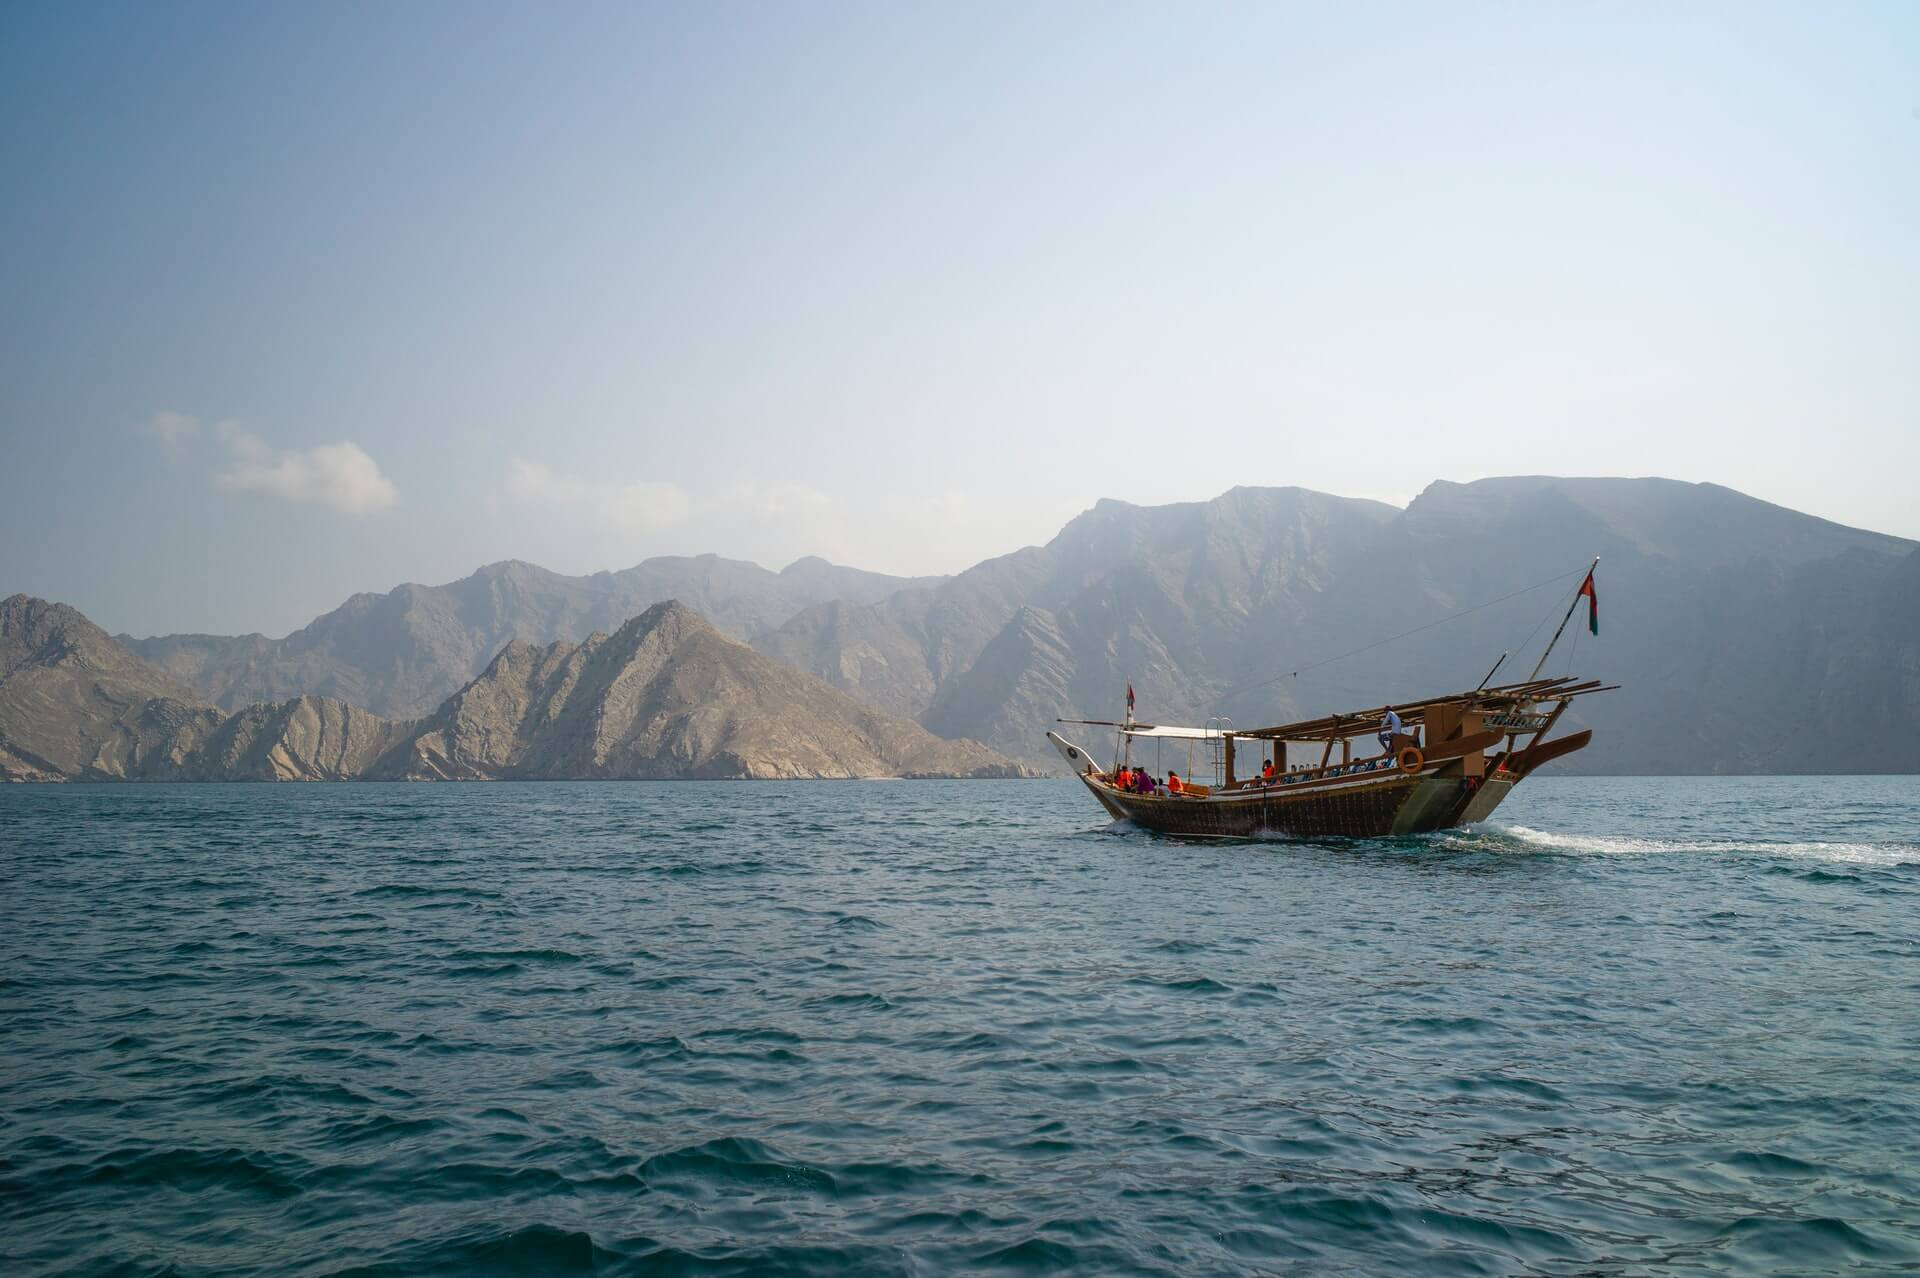 A tourist cruise in Oman in the waters of Musandam